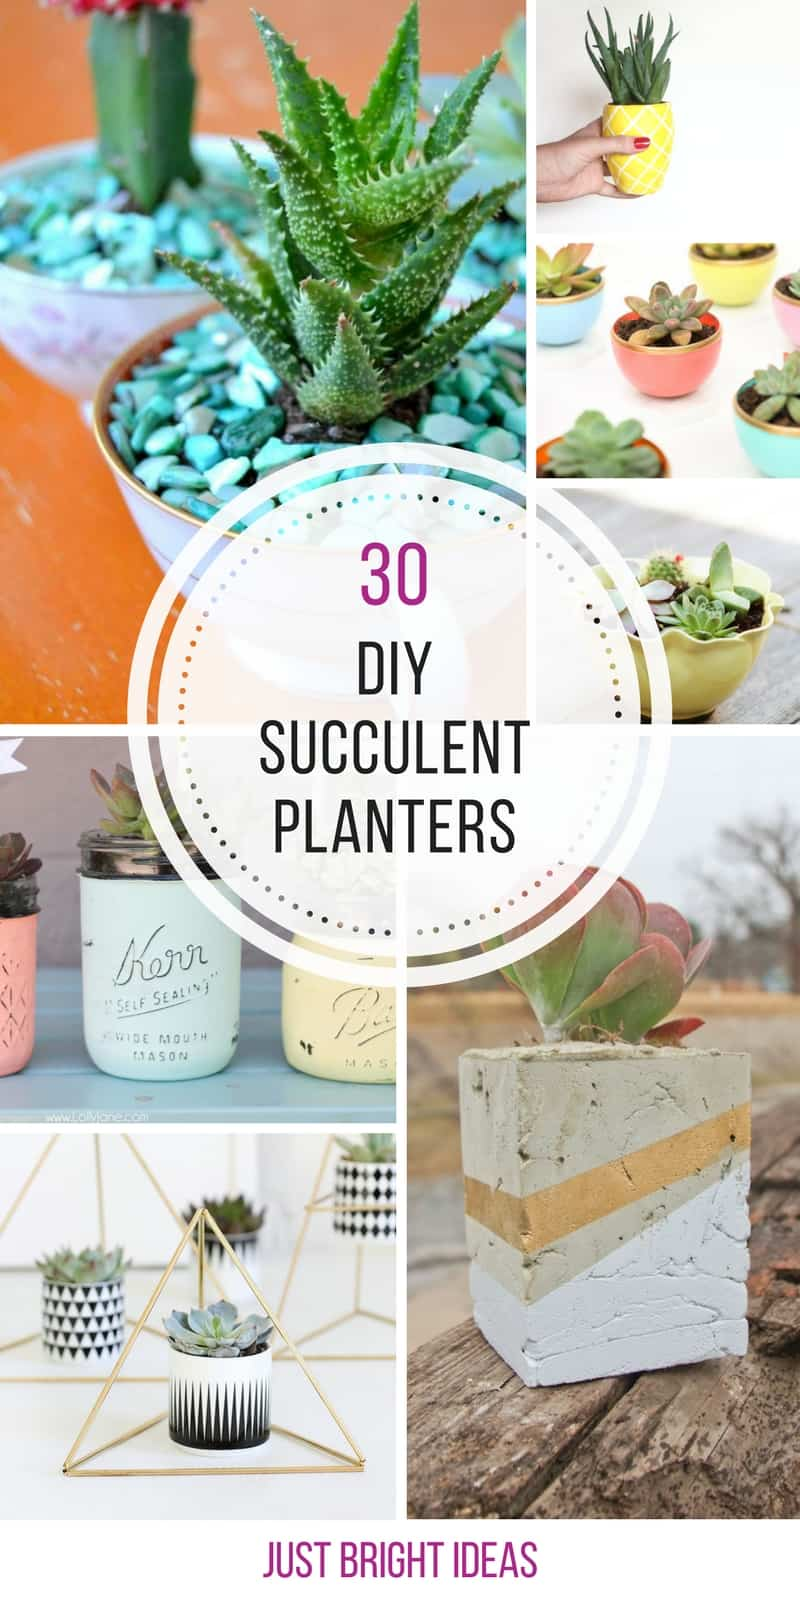 Loving these DIY succulent planters - great gift ideas too!